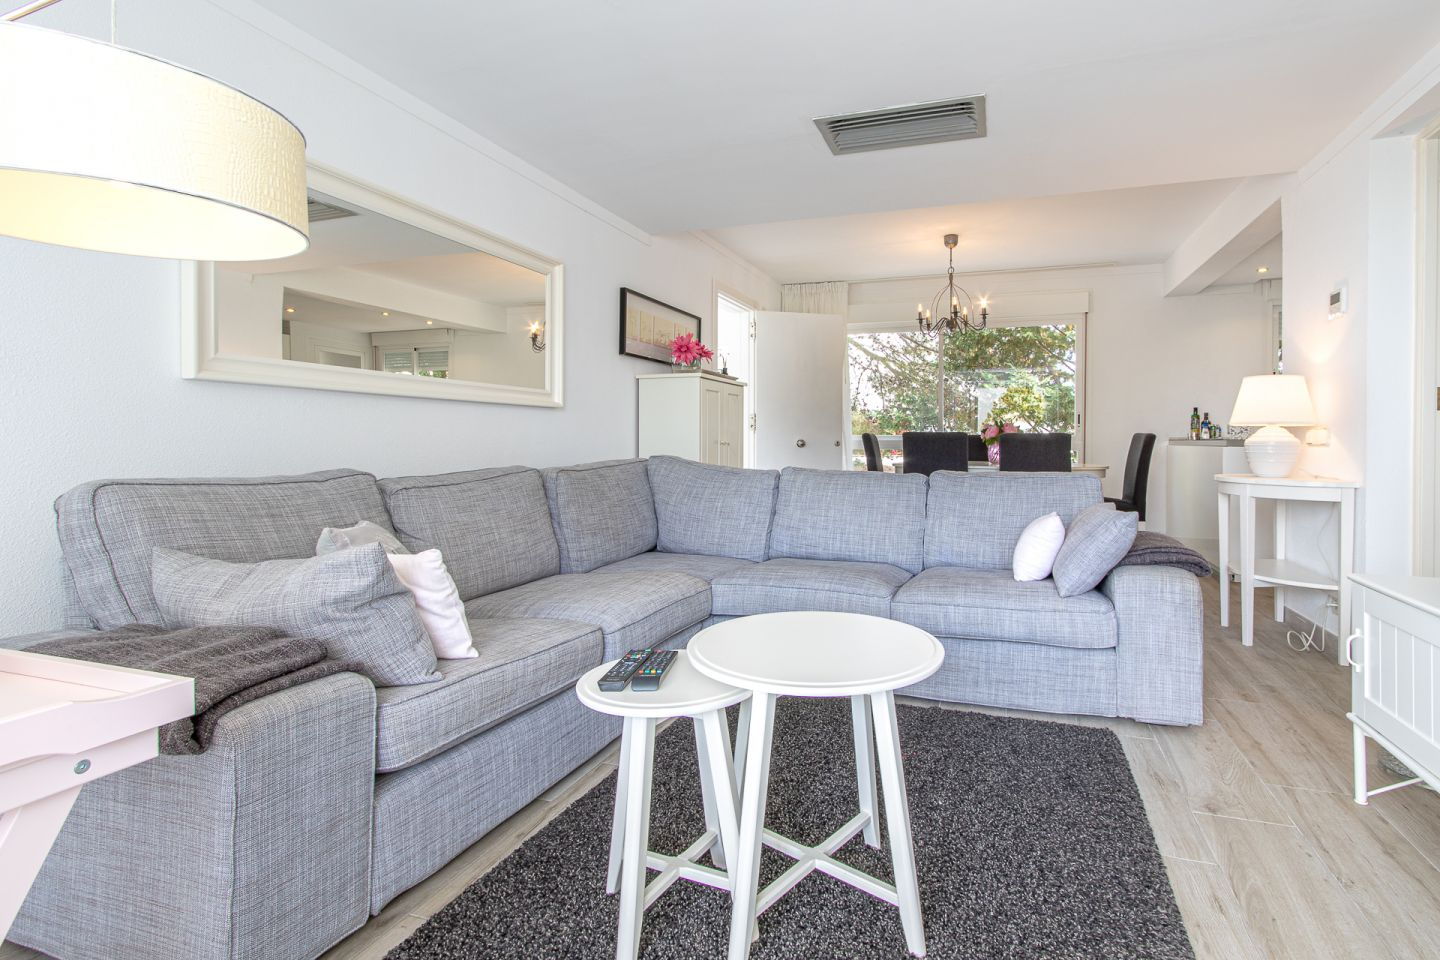 3 Bed Apartment for sale in Puerto Pollensa 4